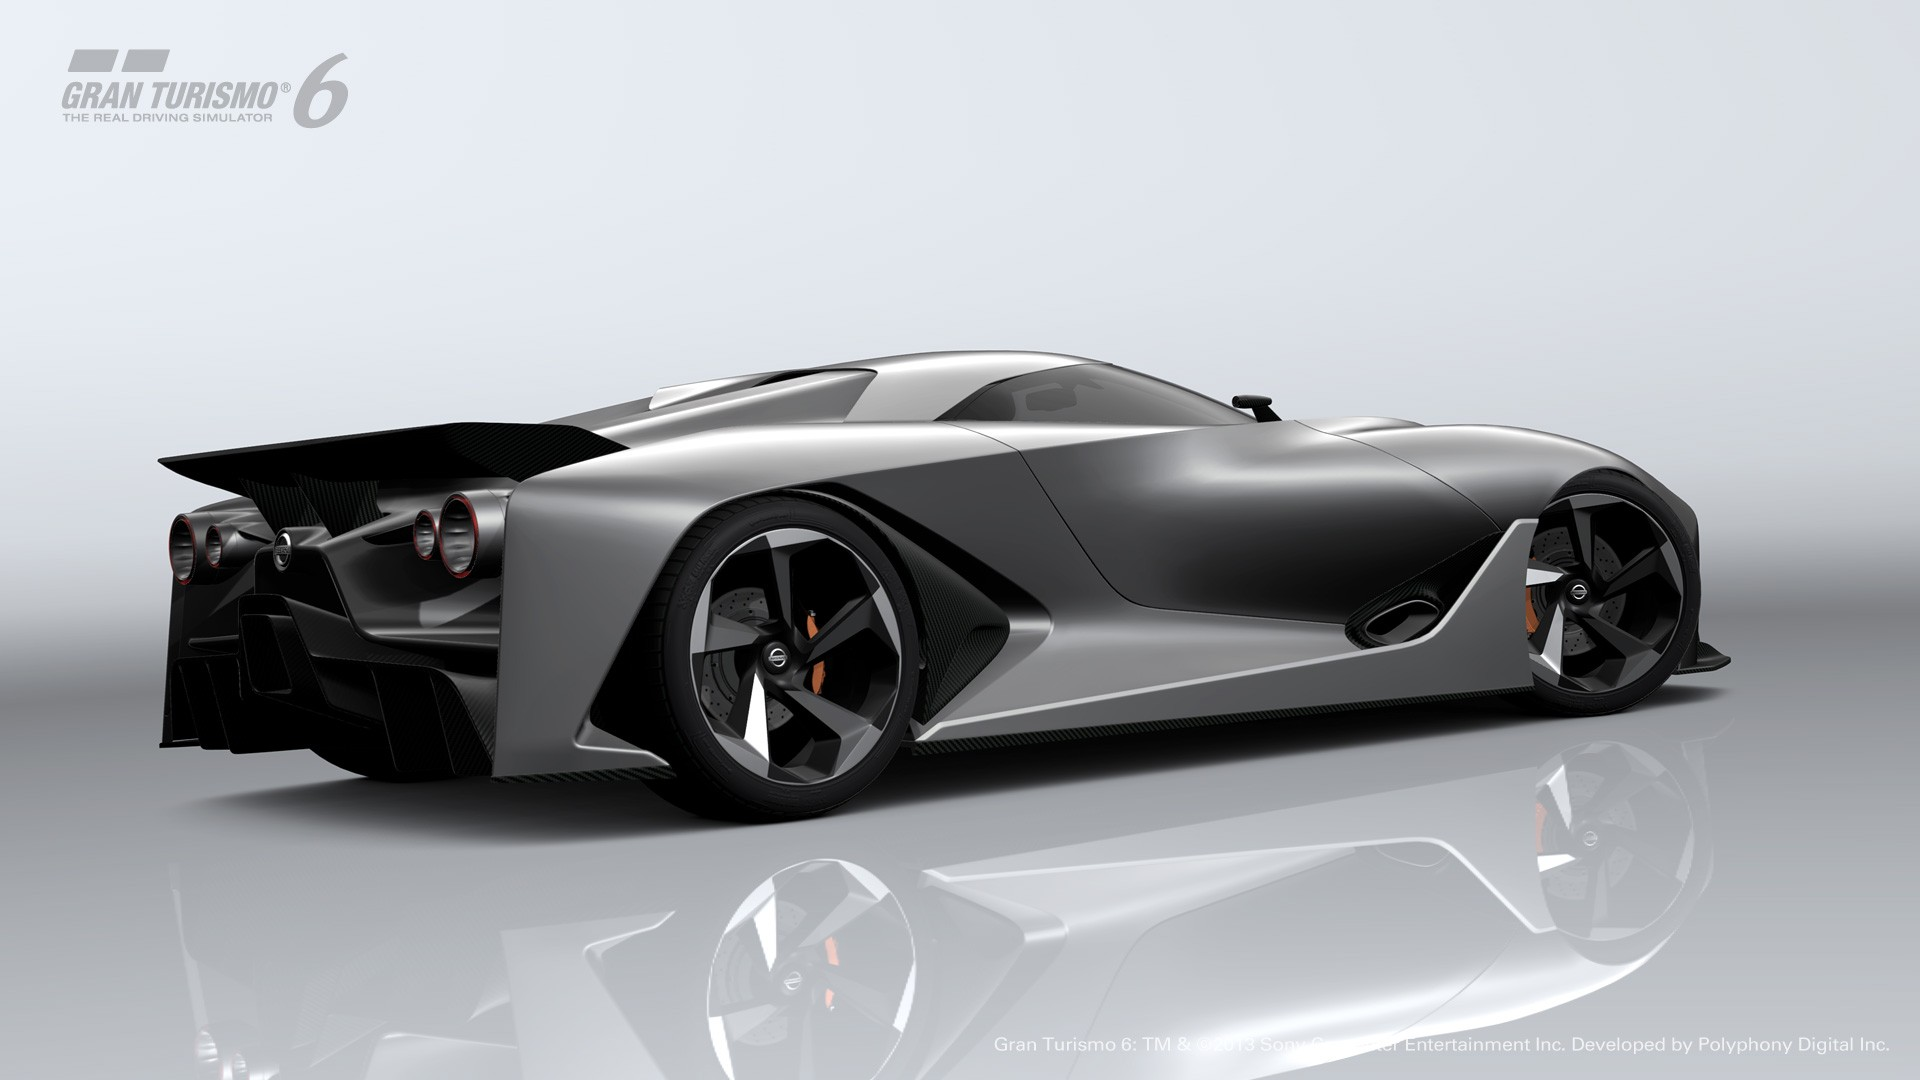 2014_Nissan_Concept_2020_Vision_Gran_Turismo_031_3349.jpg